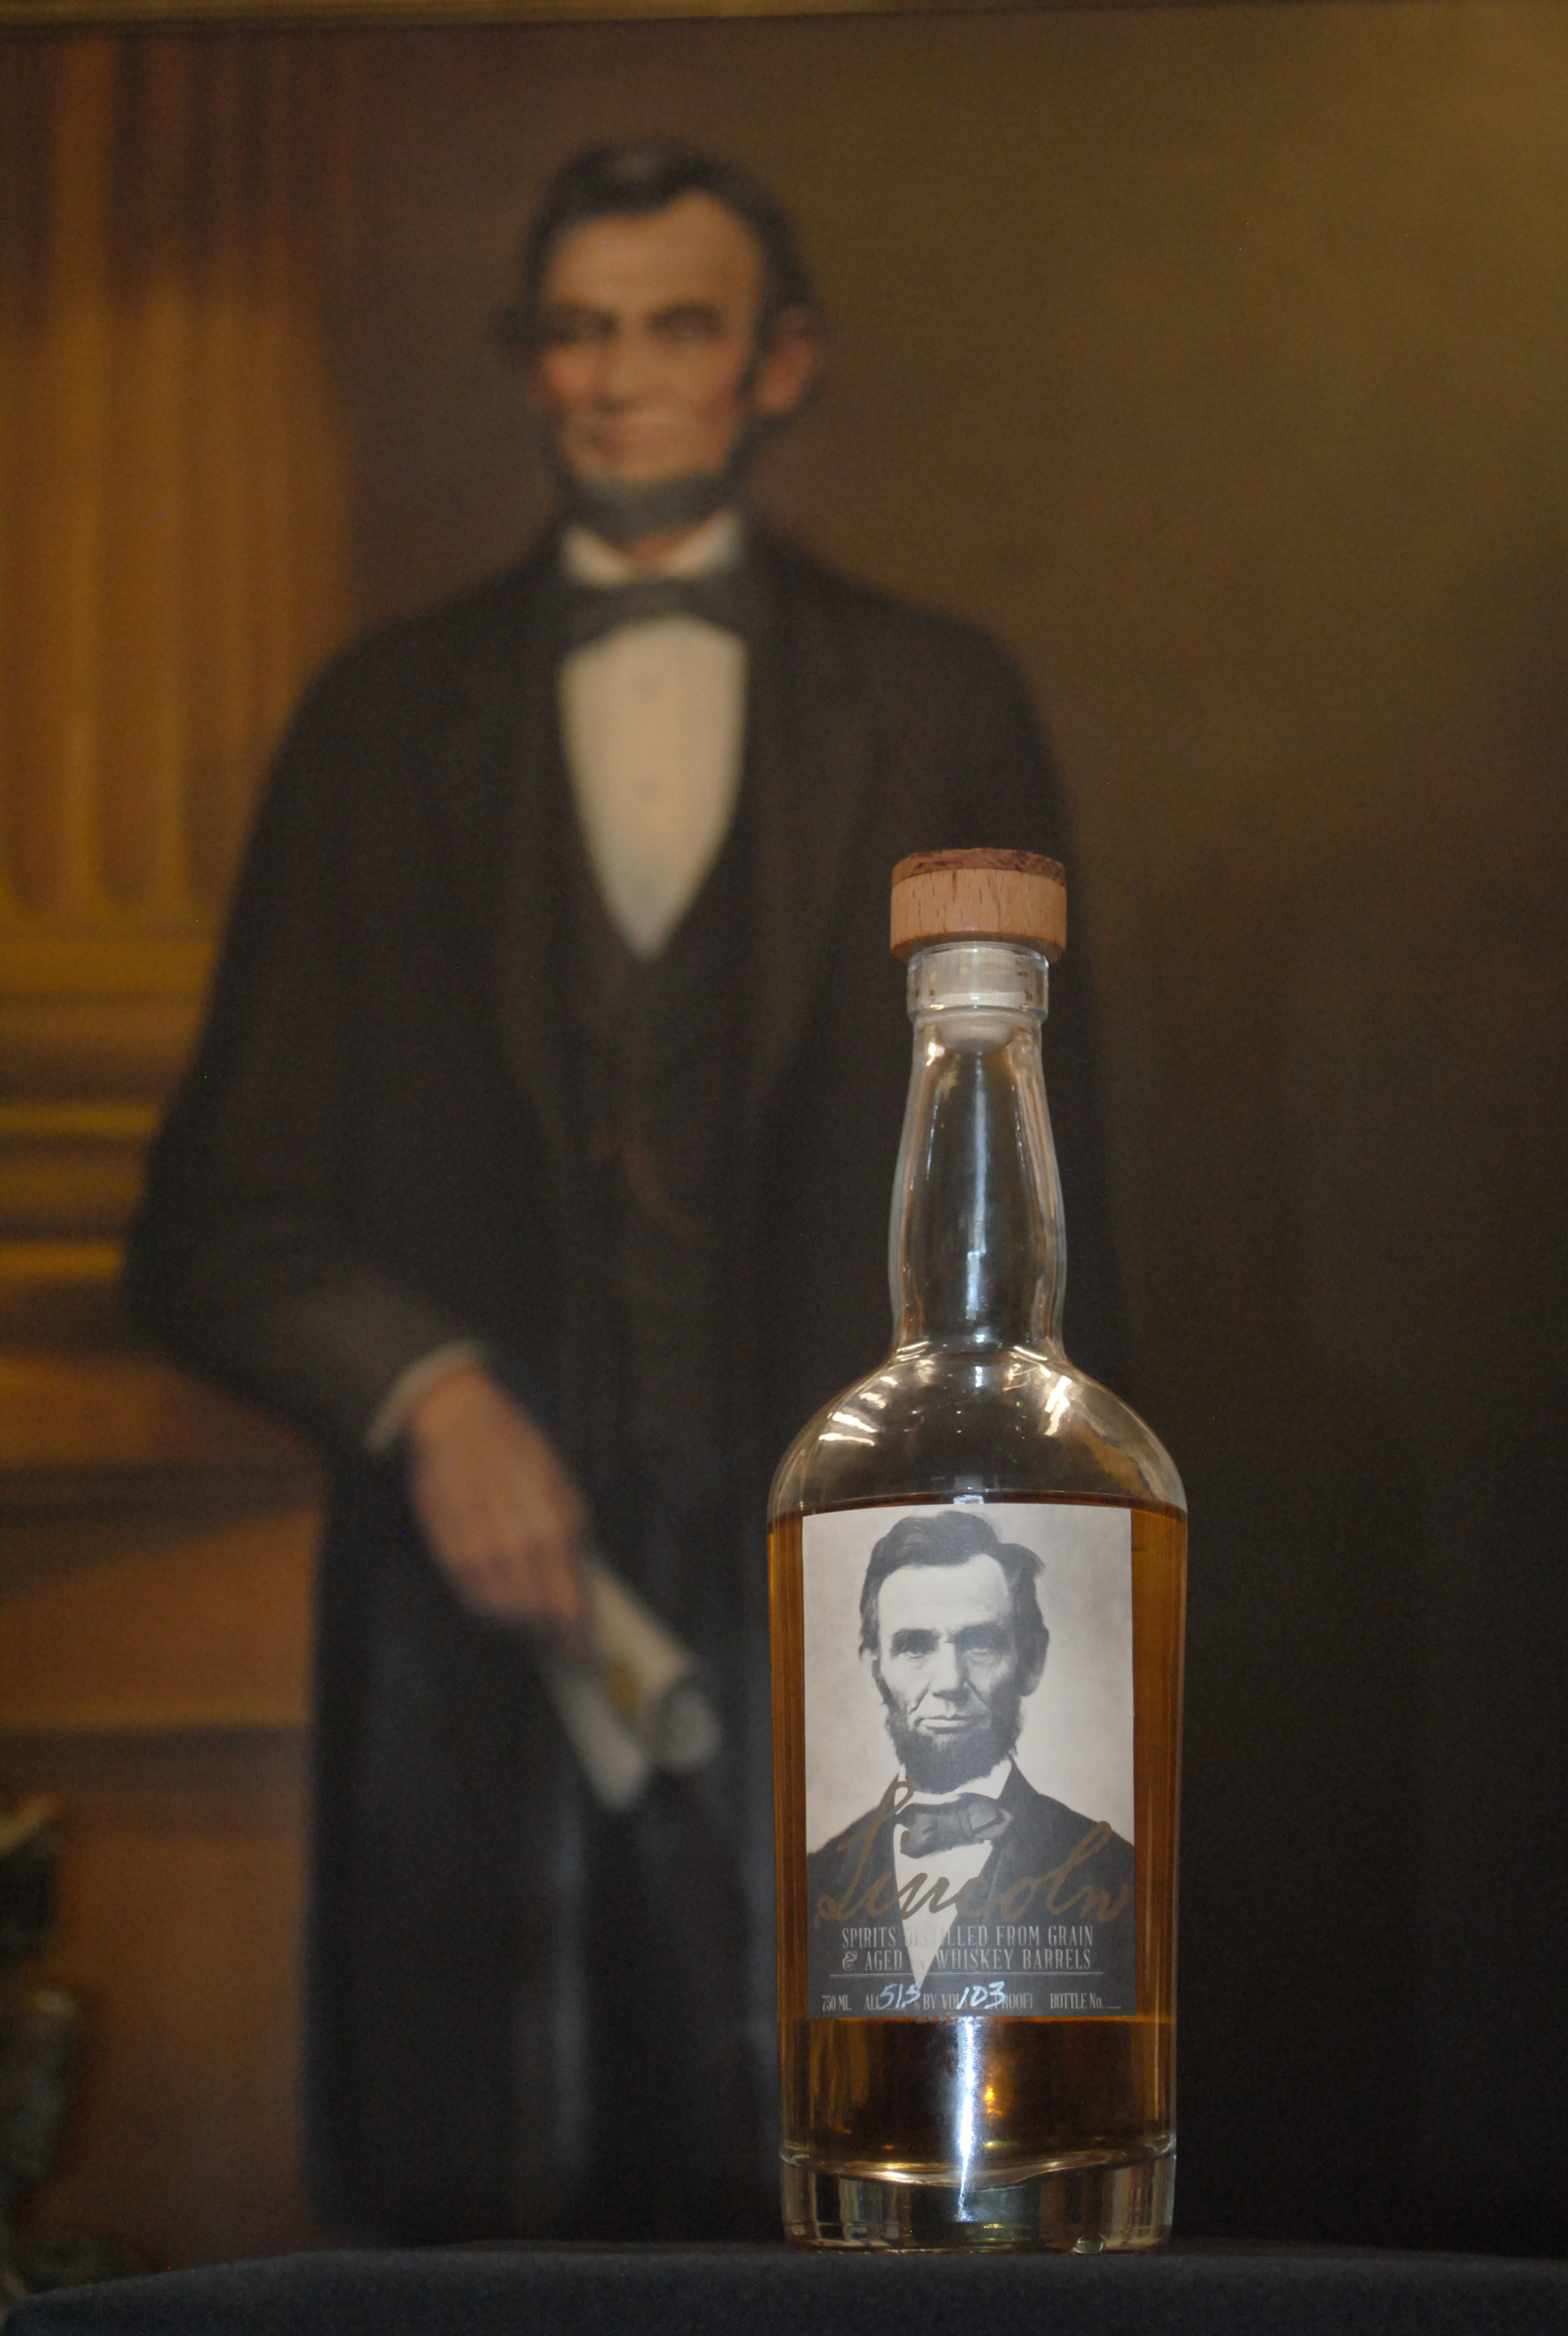 Lincoln bottle and portrait